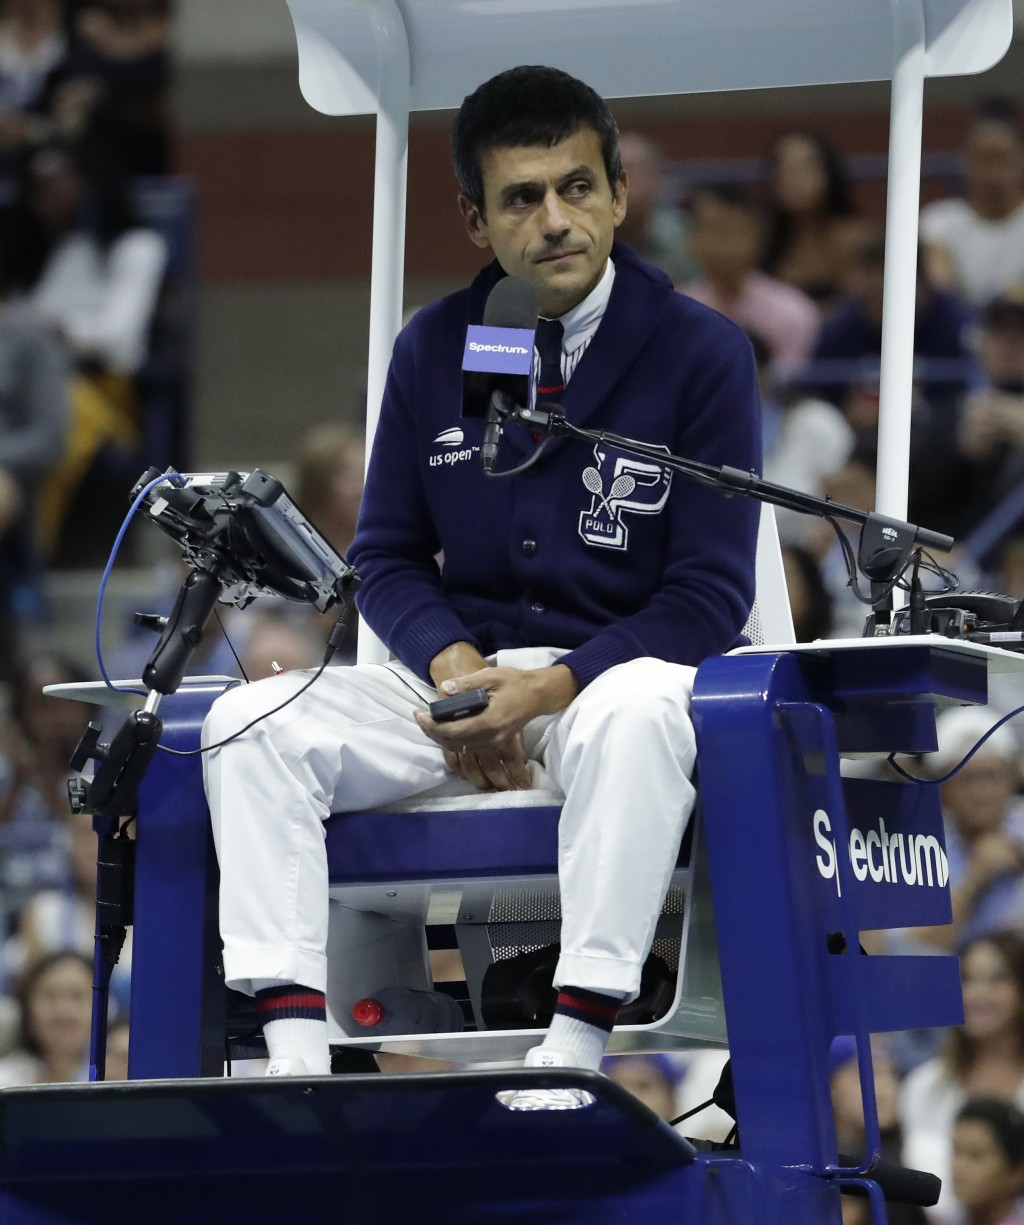 Chair umpire Carlos Ramos watches play as he officiates the match between Serena Williams and Naomi Osaka, of Japan, during the women's final of the U